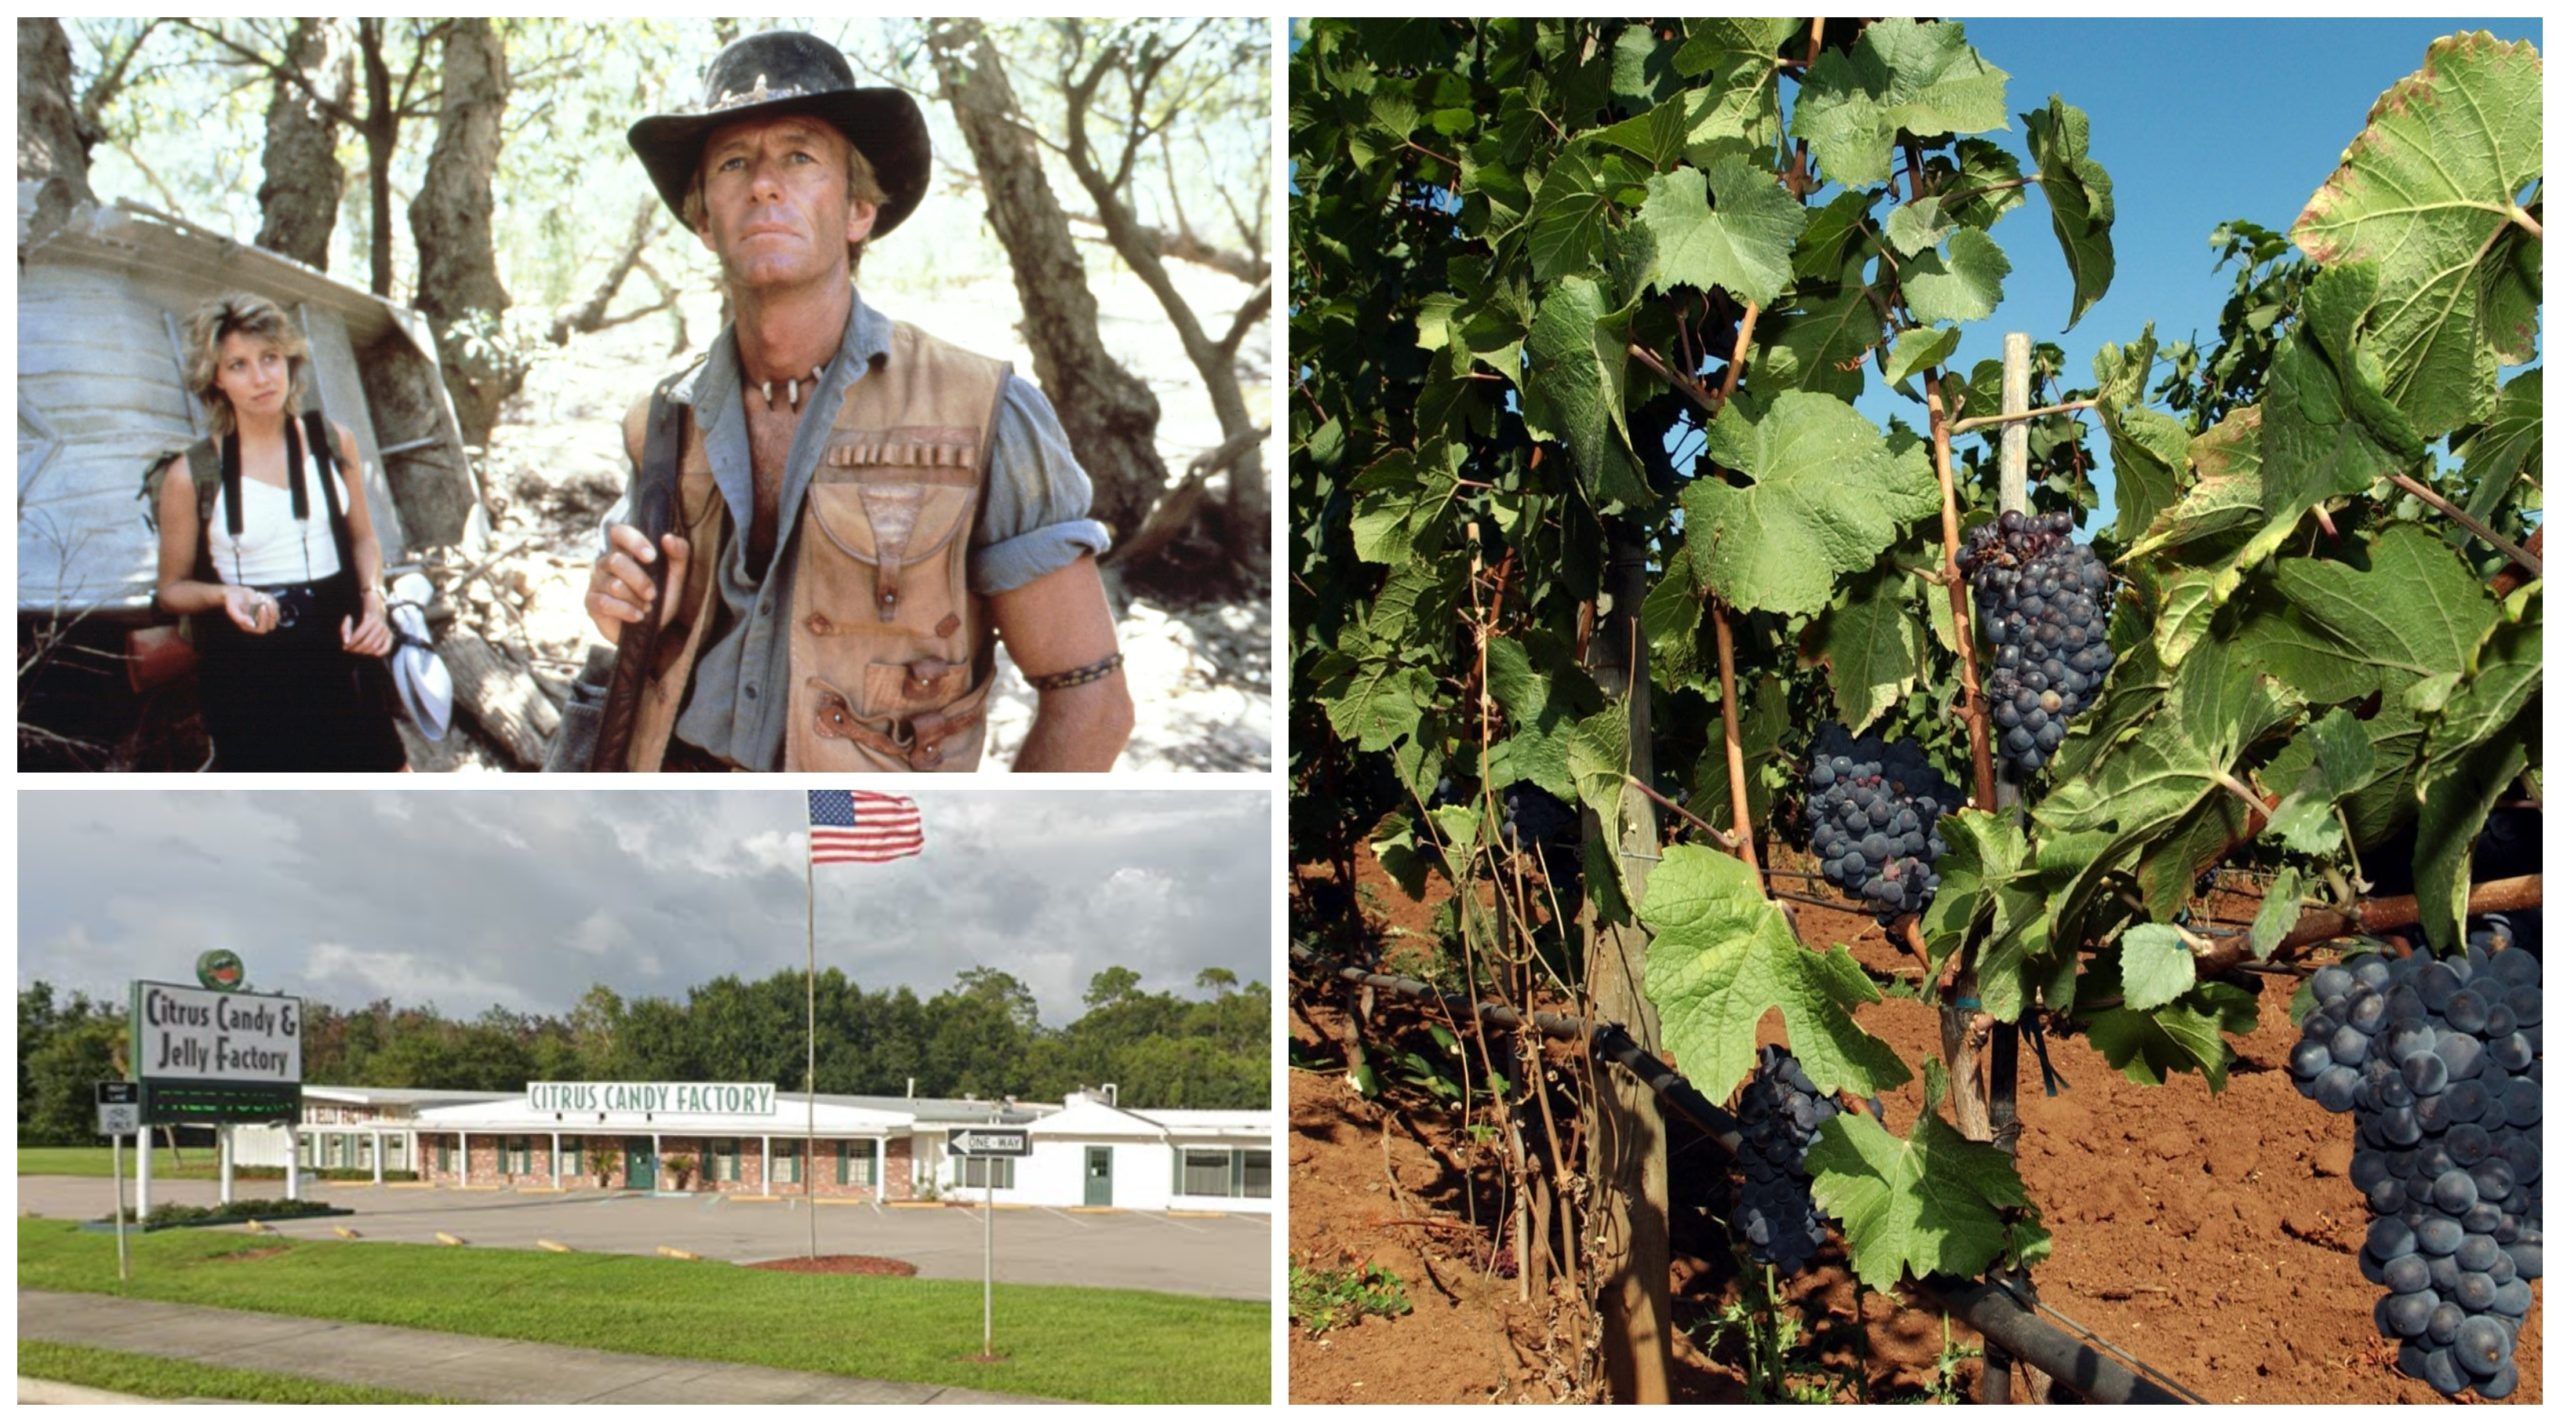 Clockwise from top left: Scene from Crocodile Dundee, a vineyard in Dundee, Oregon and the Davidson of Dundee factory in Florida.